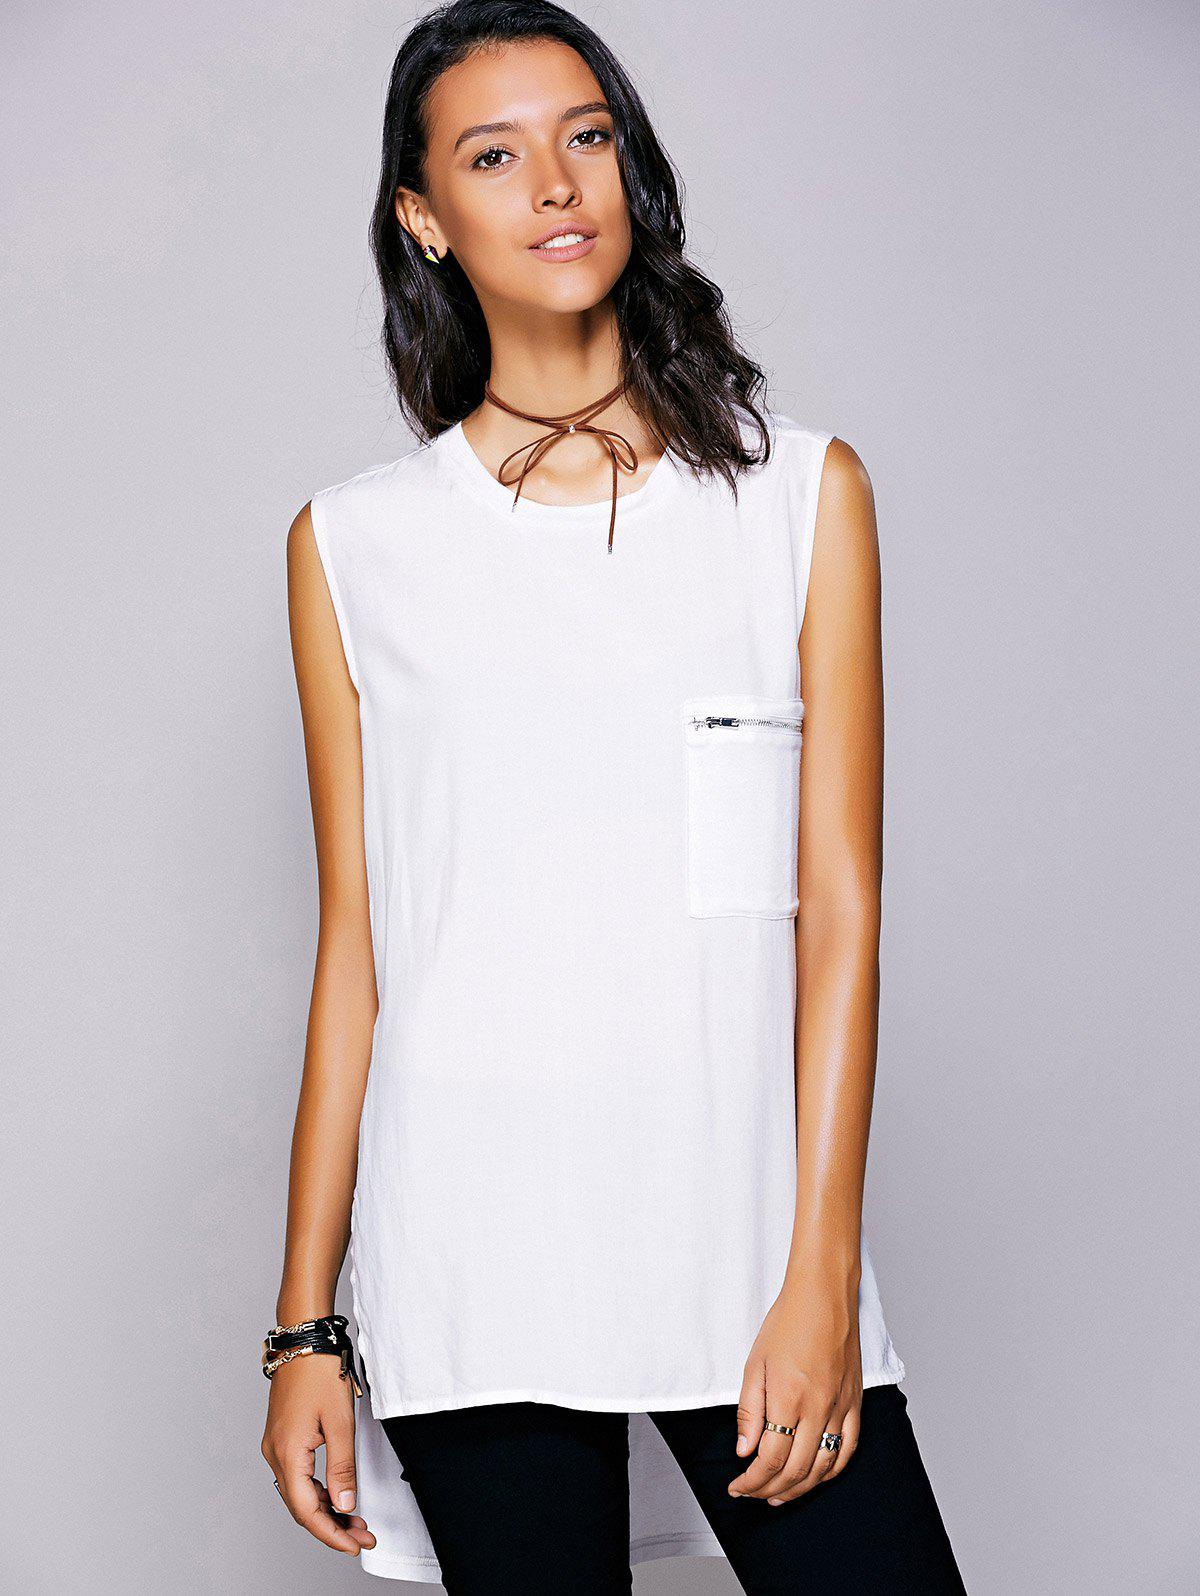 Casual Women's Jewel Neck Slit High Low Top - WHITE M